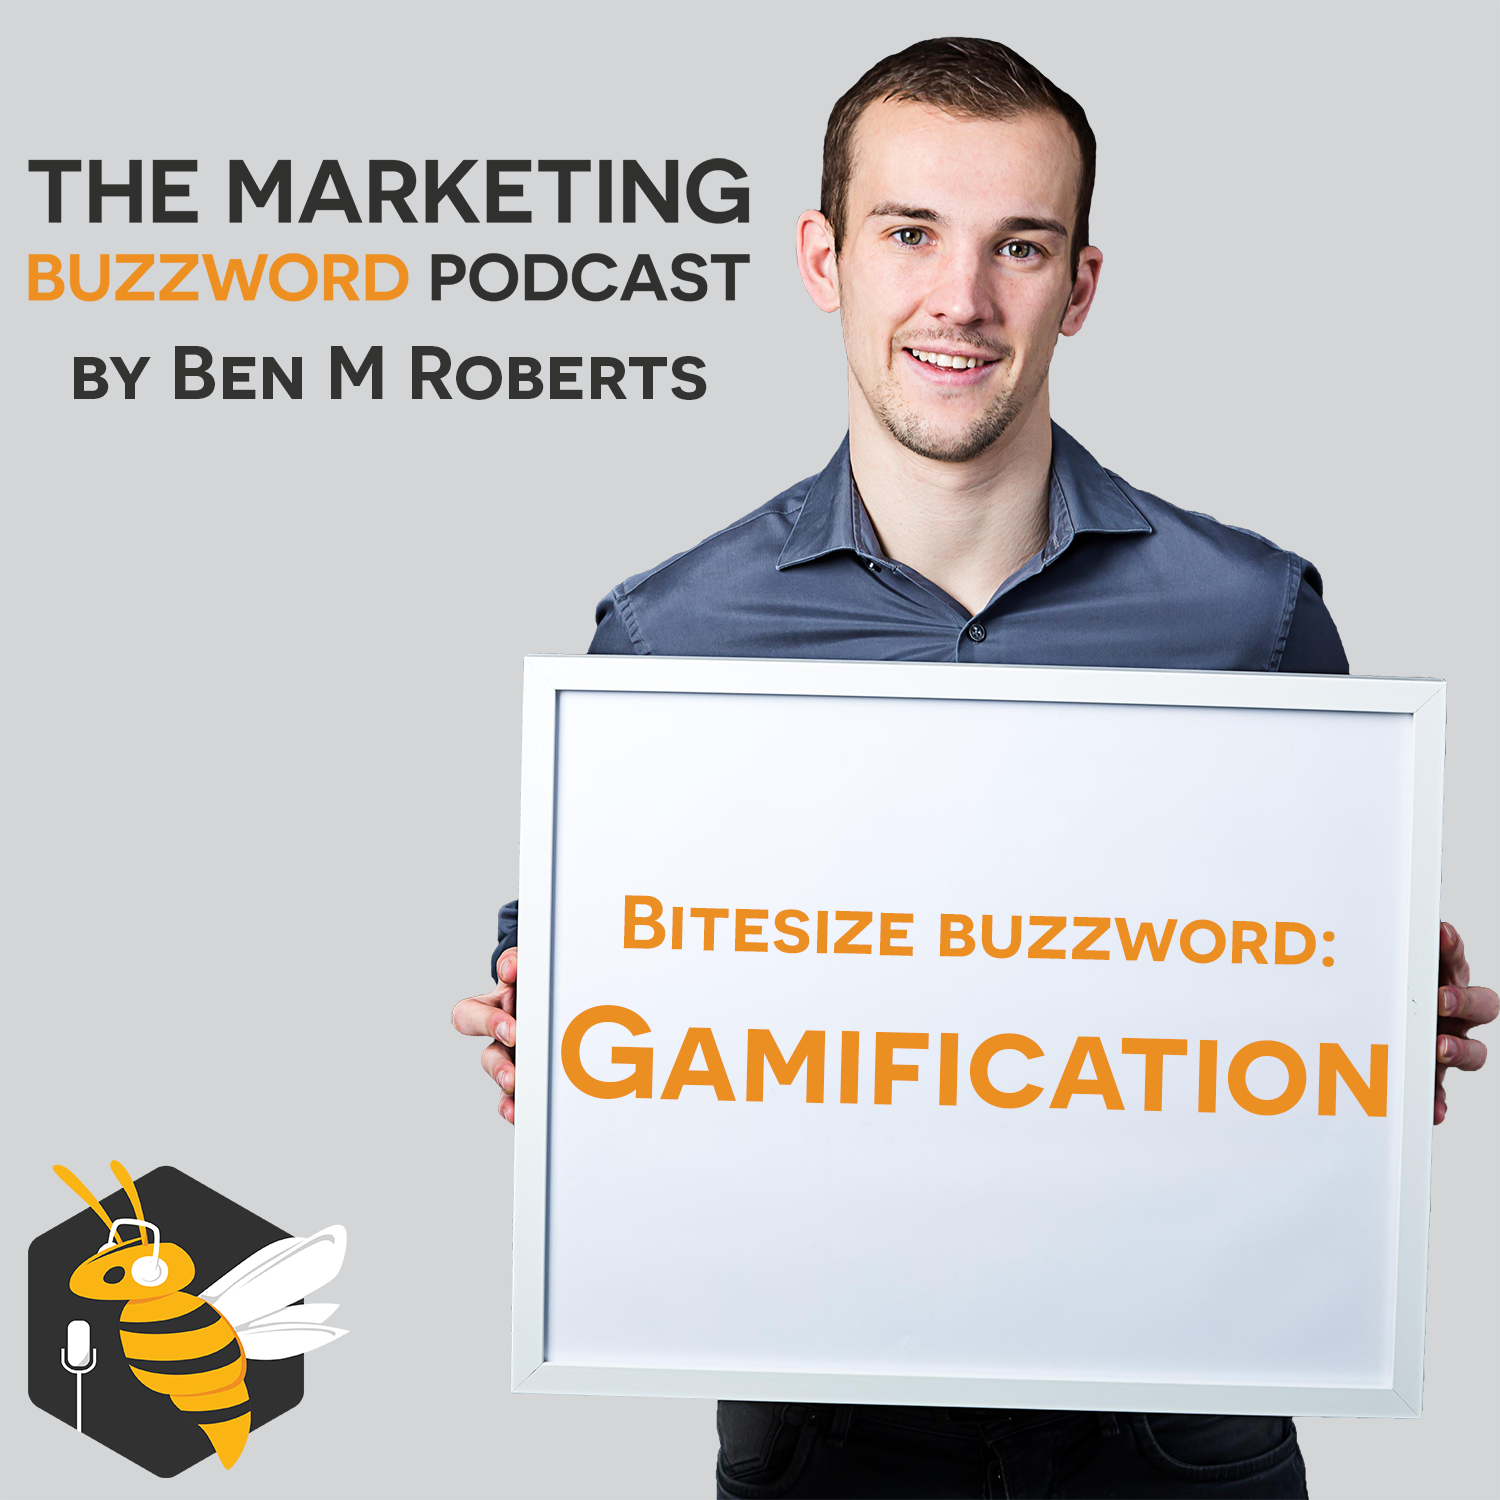 Bitesize Buzzword: Gamification - How can gamification improve the customer experience? How does gamification improve company culture? How do you measure the impact of gamification?